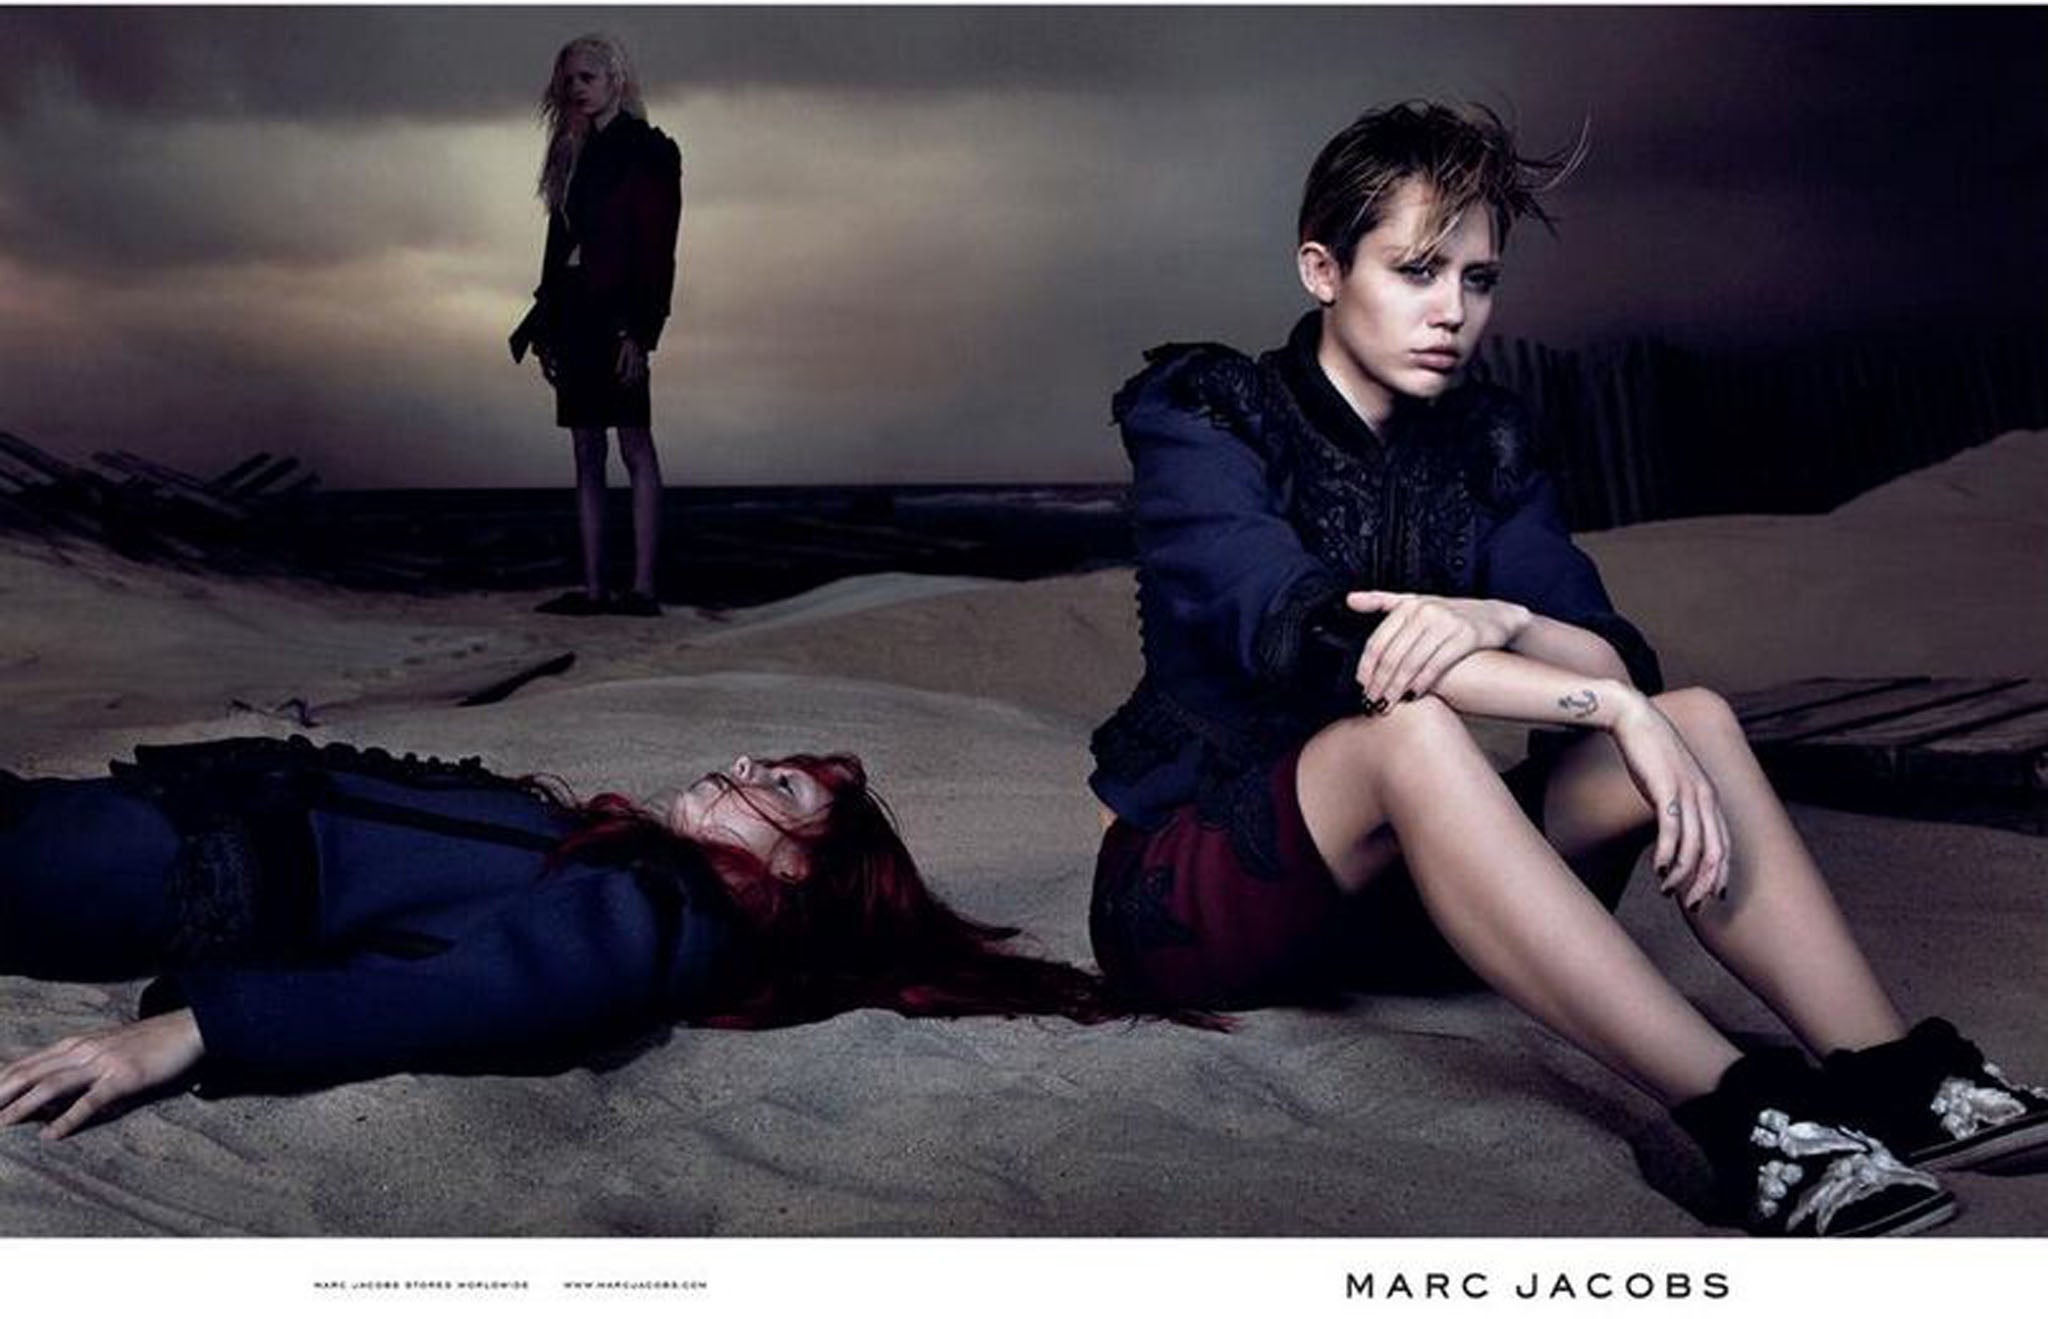 Why Miley Cyrus For Marc Jacobs Comes As No Surprise To The Fashion Industry